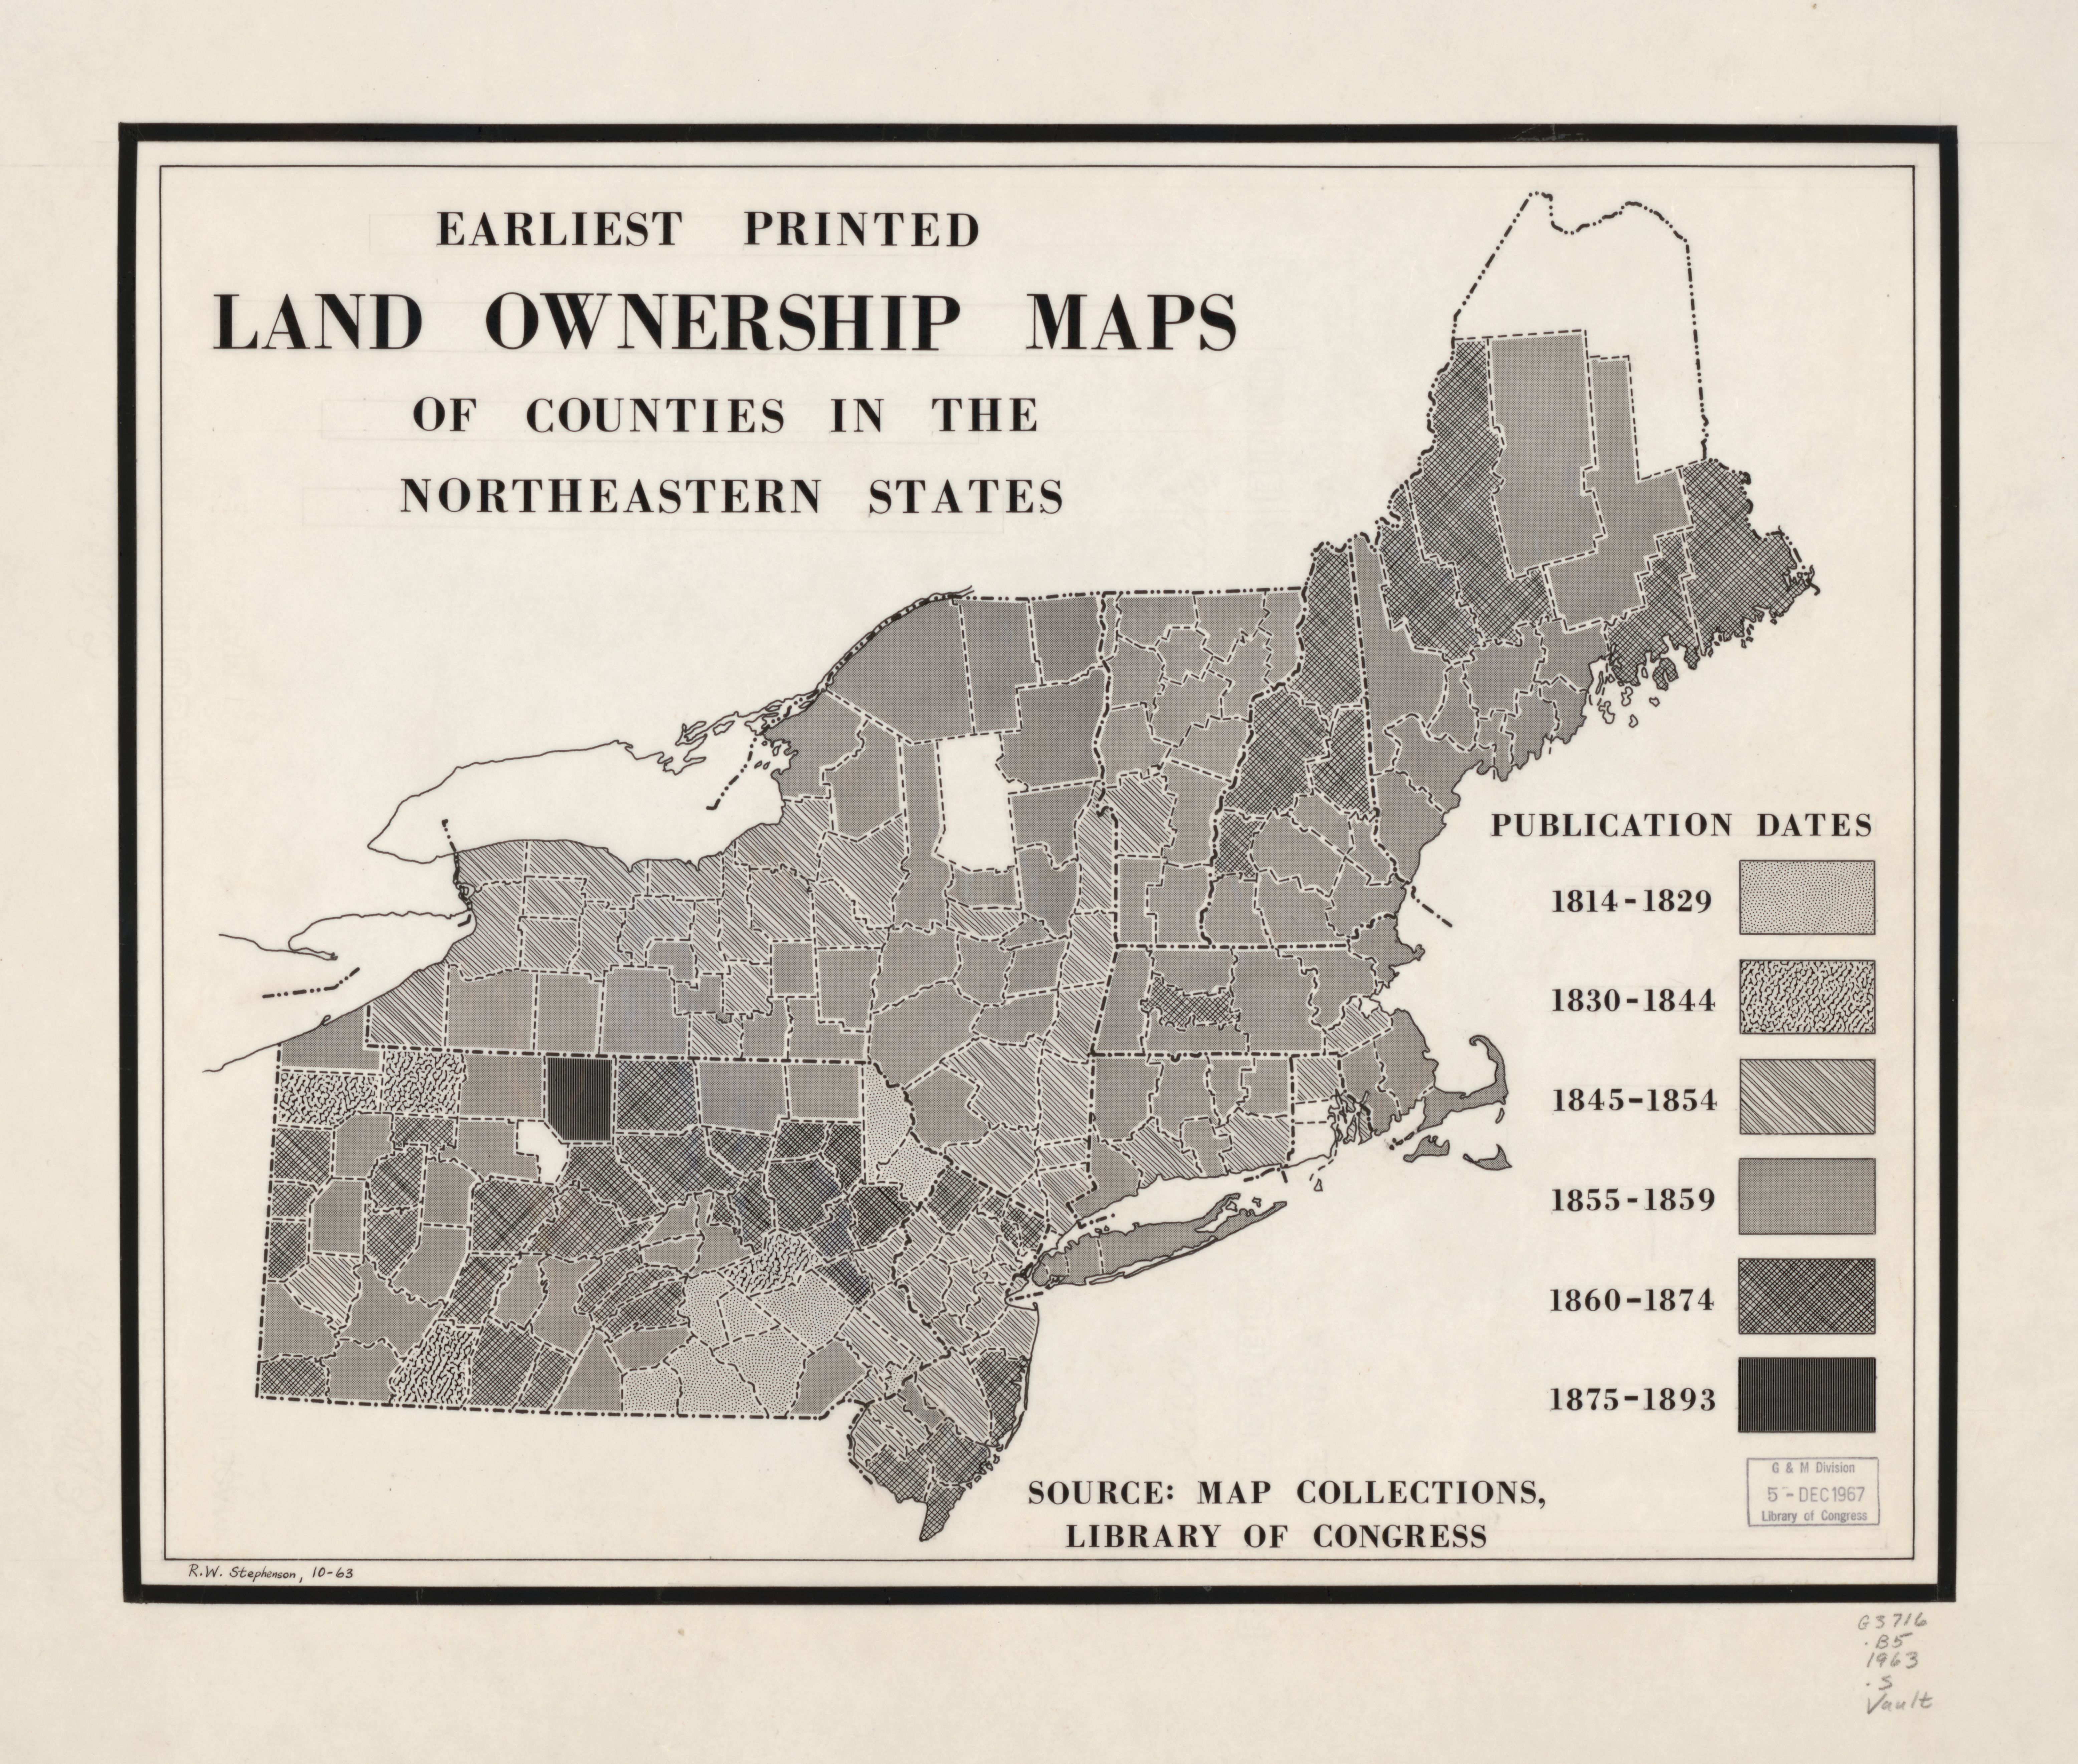 File:Earliest printed land ownership maps of counties in the ...